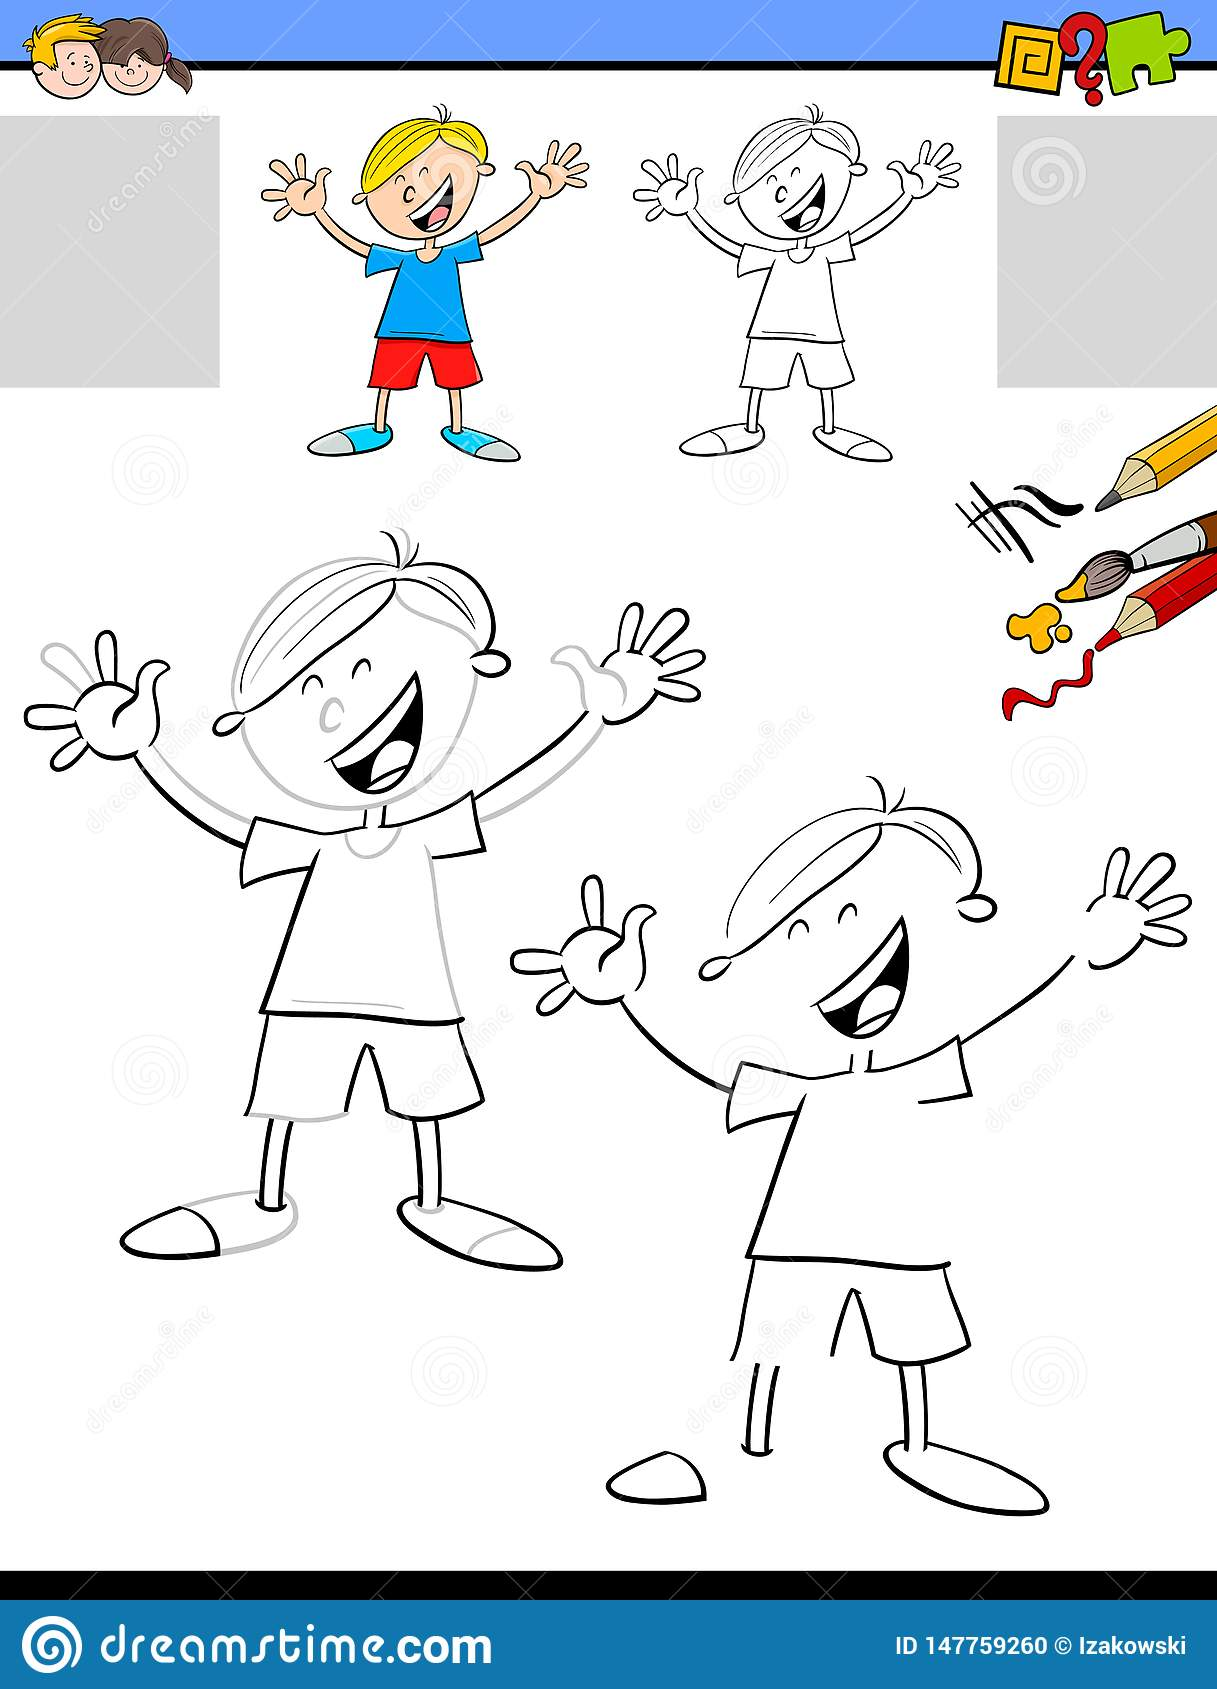 Drawing And Coloring Worksheet With Boy Stock Vector